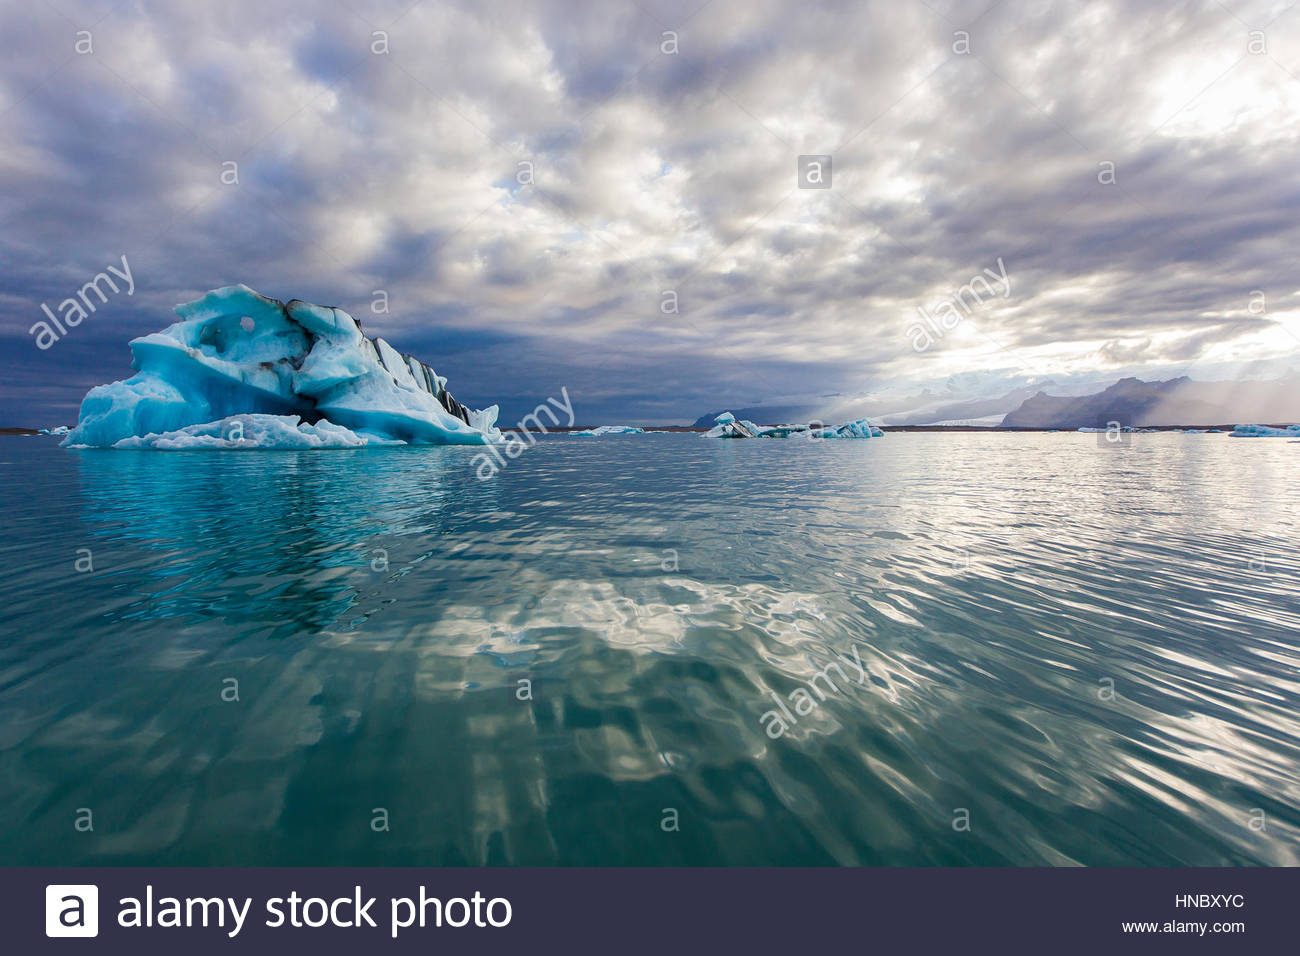 Clouds fly overhead, and water ripples surround a large iceberg in Jokulsarlon glacial lagoon. - Stock Image